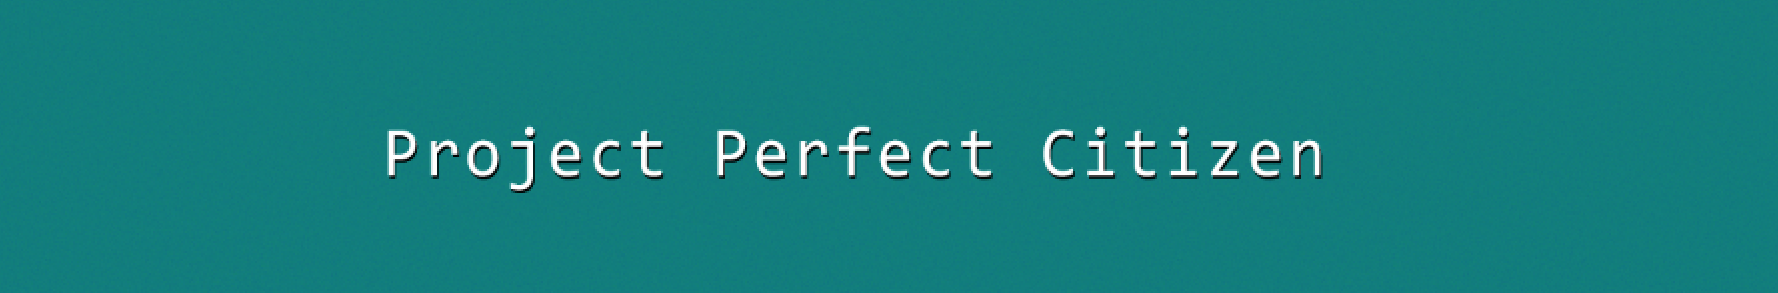 Project Perfect Citizen